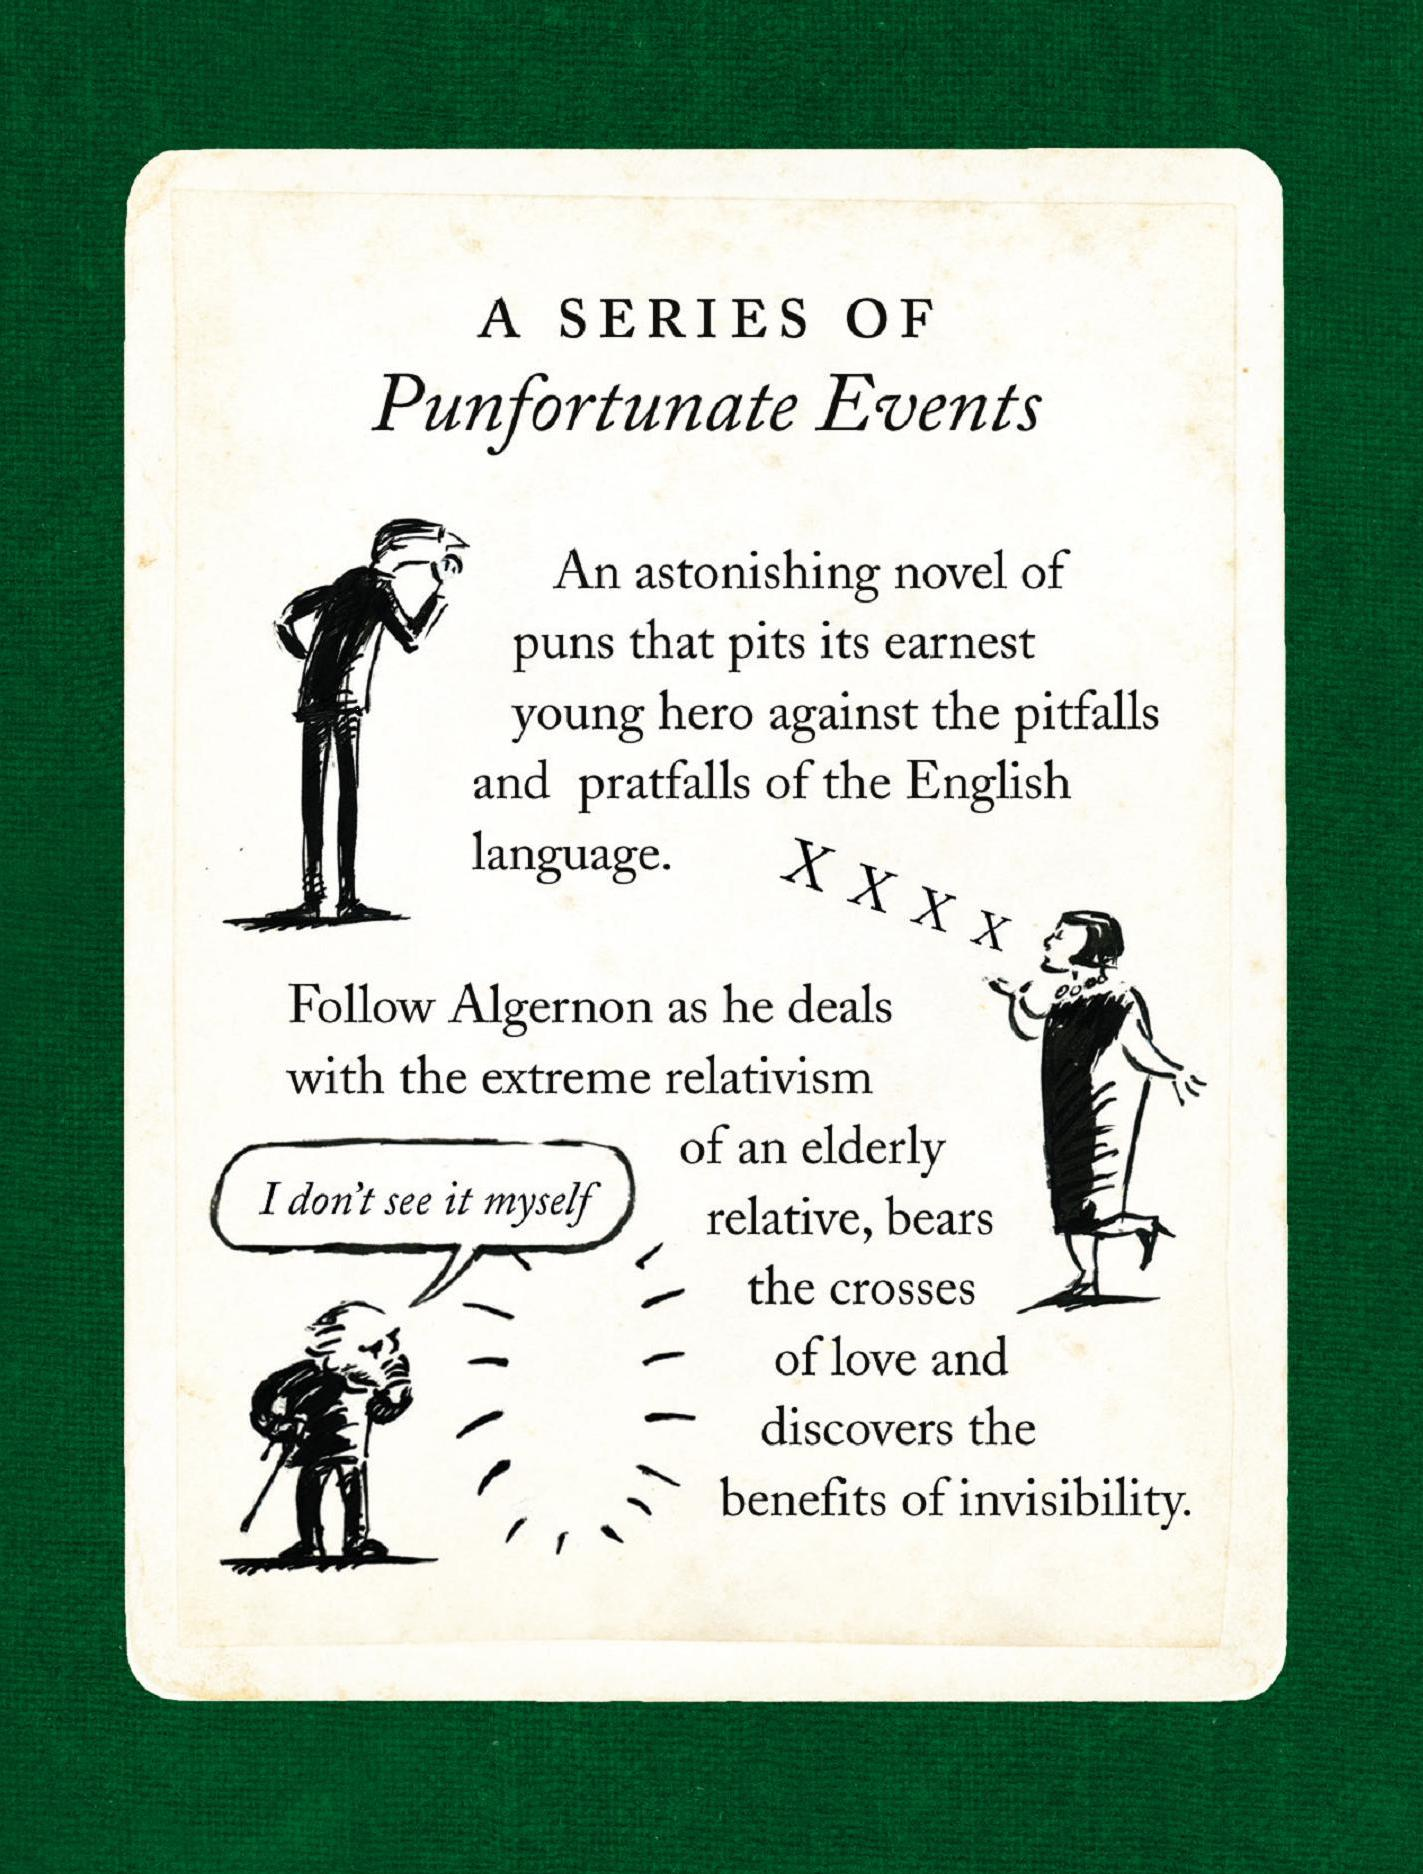 REviews - 'The discerning many will come to this pleasantly racing-green volume for the gimmick of it, and stay for Jones's sheer relentless glee and his charming drawings of the bespectacled Algernon and the rest' TLS.'As a hater of puns, this collection of comic tiny tales and illustrations revelling in smart wordplay should by rights be anathema to me. Instead I find myself laughing out loud page after page at the brio in its unashamedly silly (and simultaneously very clever) humour... Rich with delightful references to high and popular culture, from Shakespeare and Schopenhauer to the Rolling Stones. It is, I am loath to admit, a complete joy' Big Issue.'This is quite brilliant' Cotswold Life.